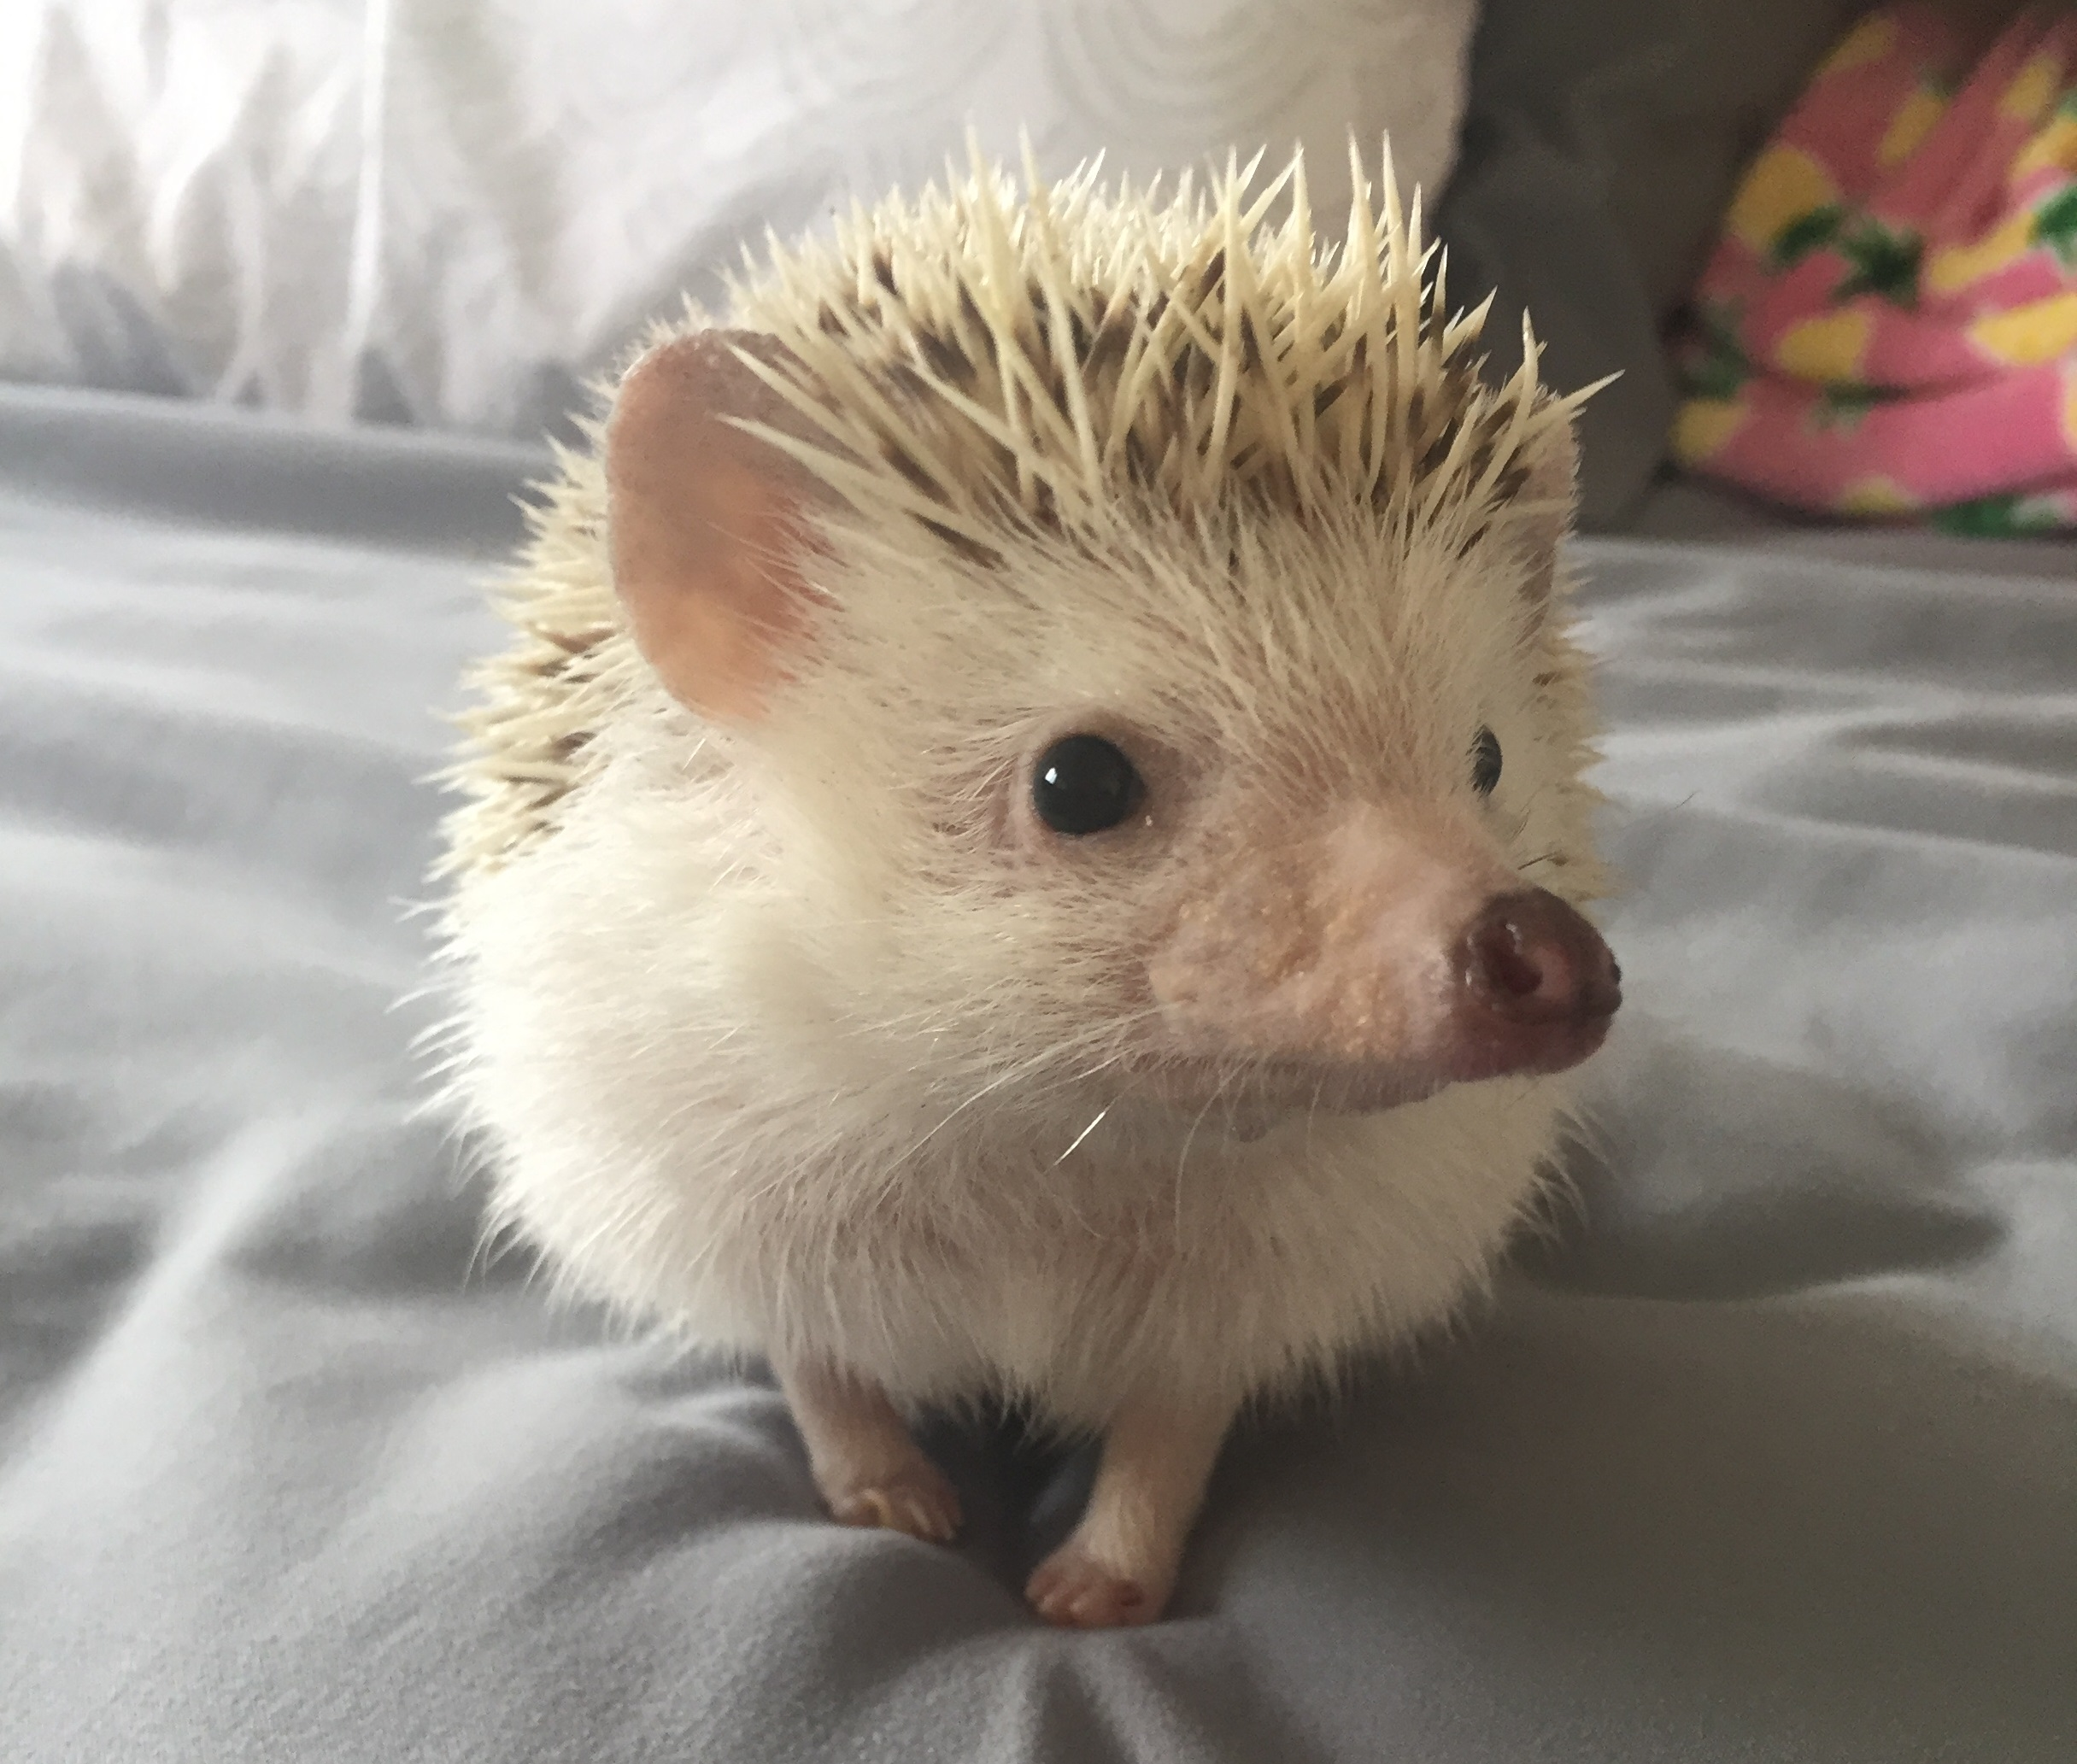 Pickles the hedgehog won cutest exotic pet. (Courtesy